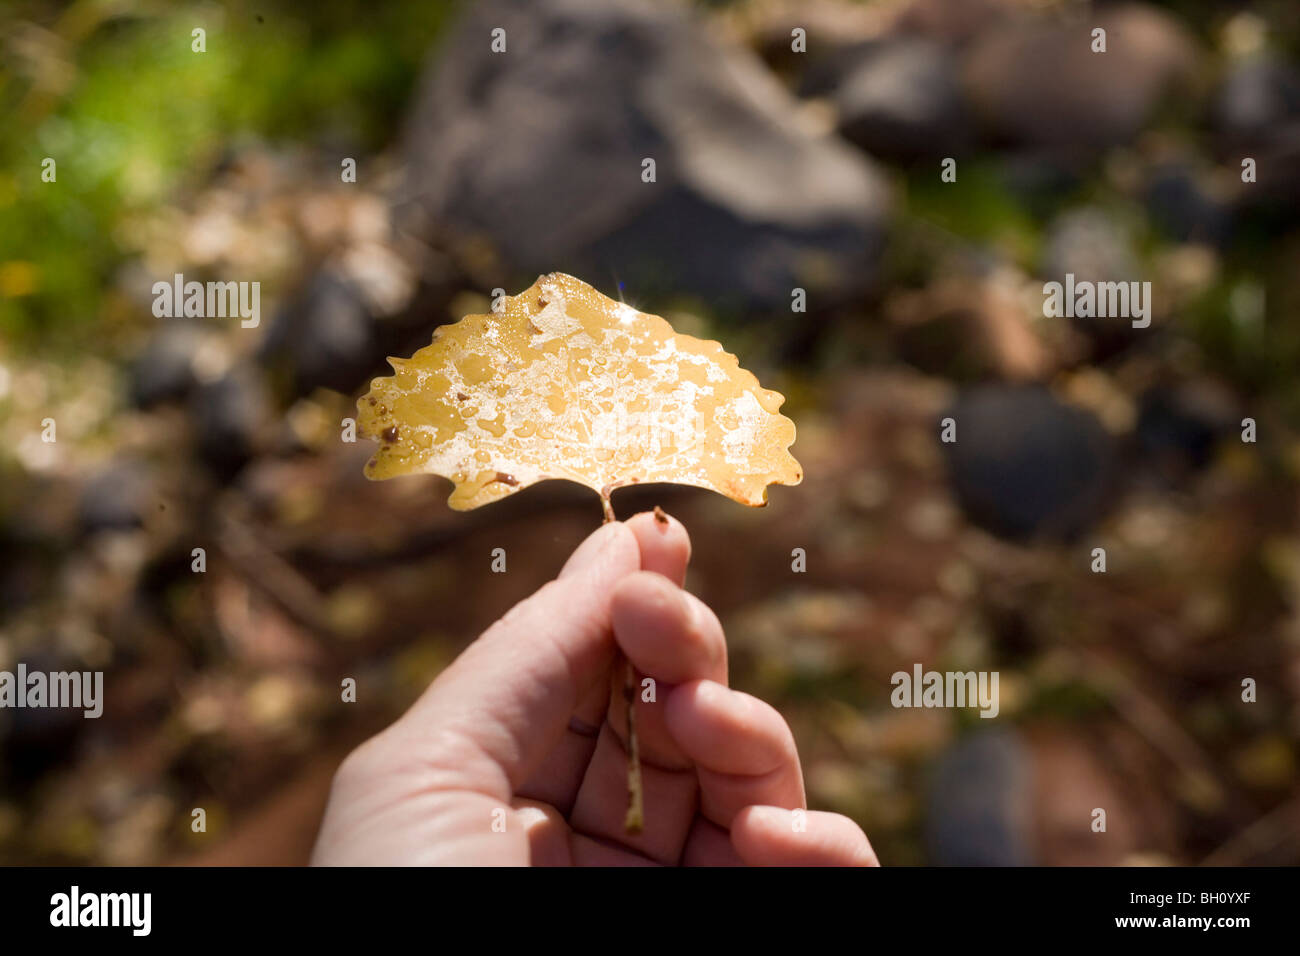 dew drops of water on a yellow cottonwood leaf - Stock Image